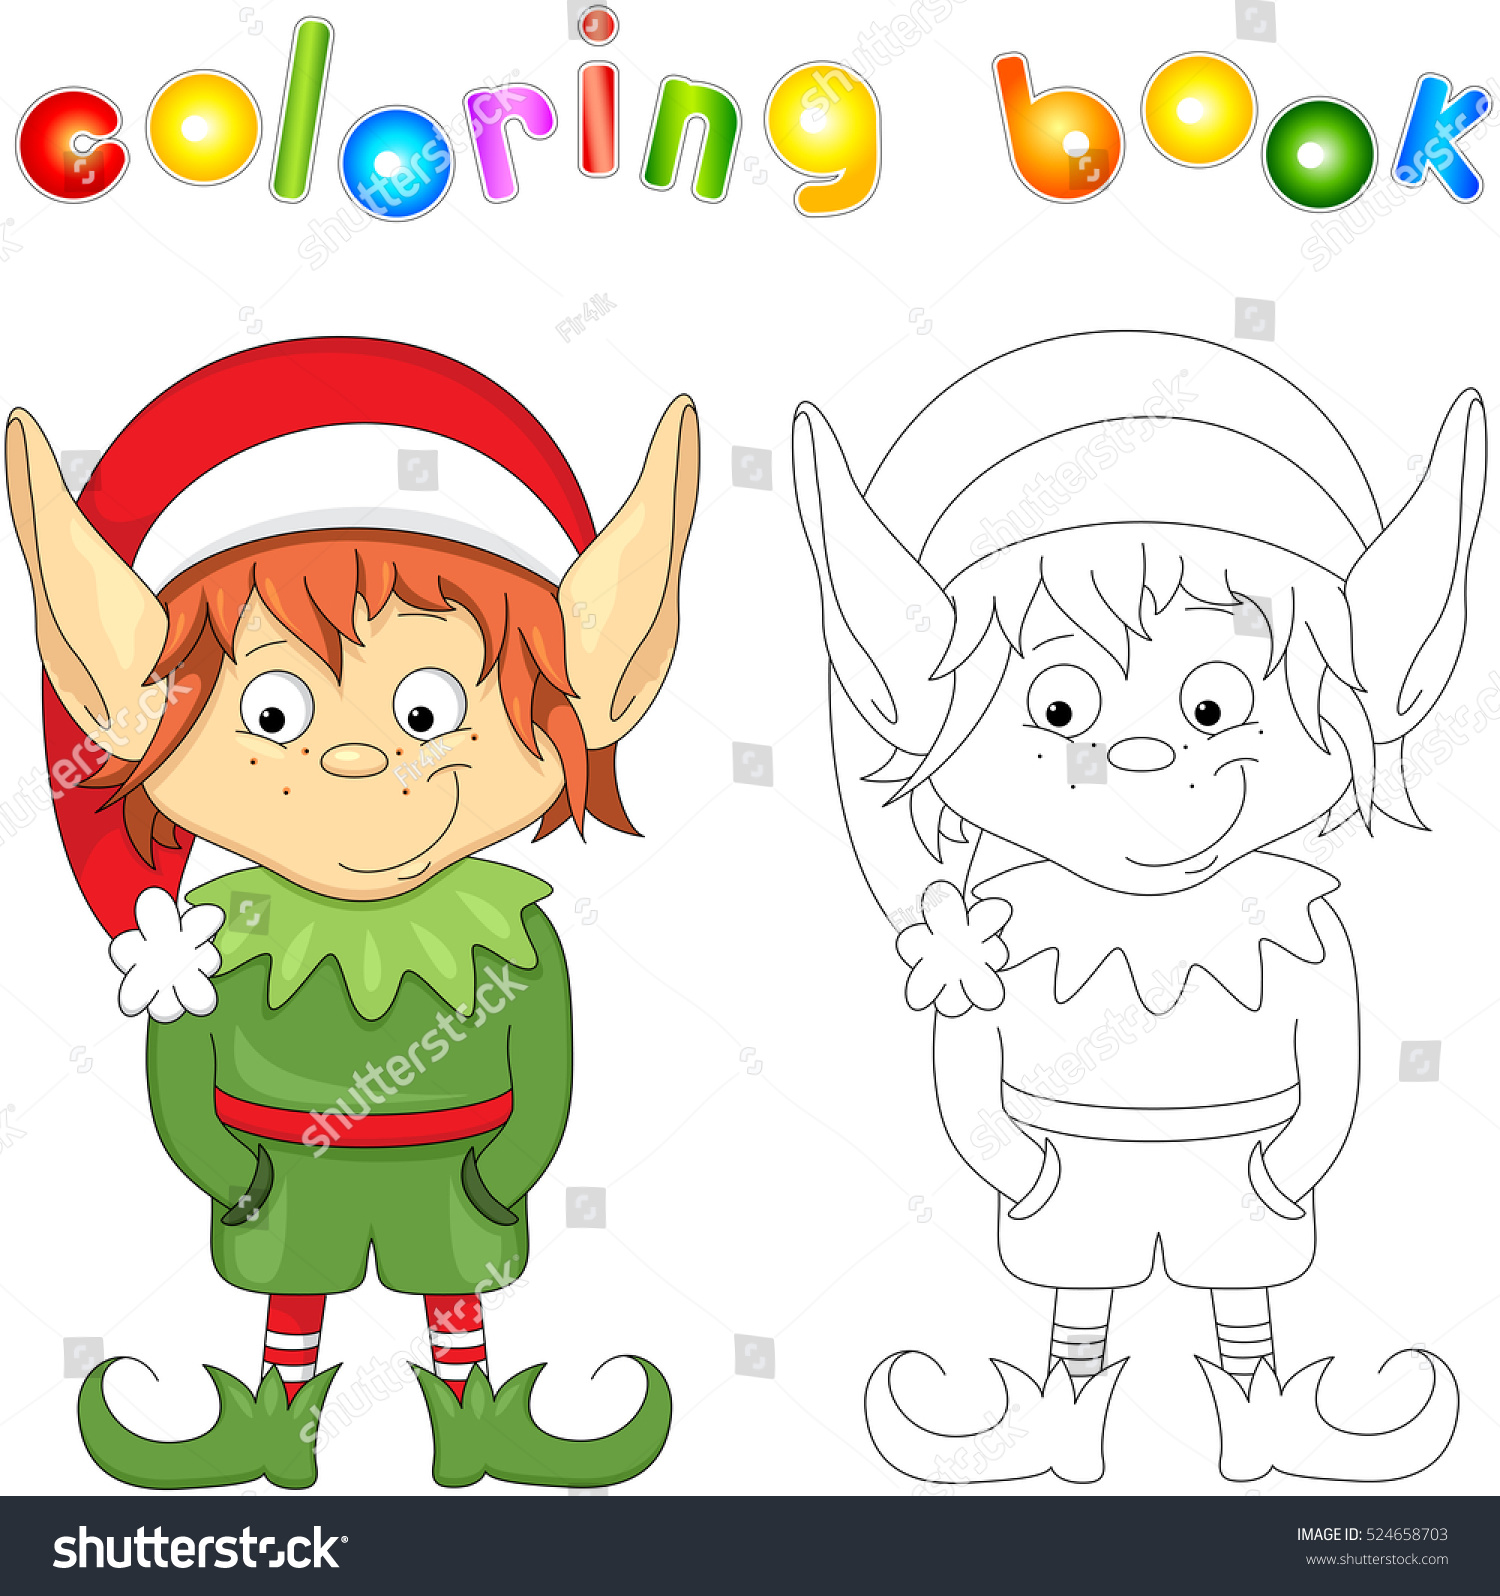 Christmas Elf Coloring Book Kids Stock Vector HD (Royalty Free ...